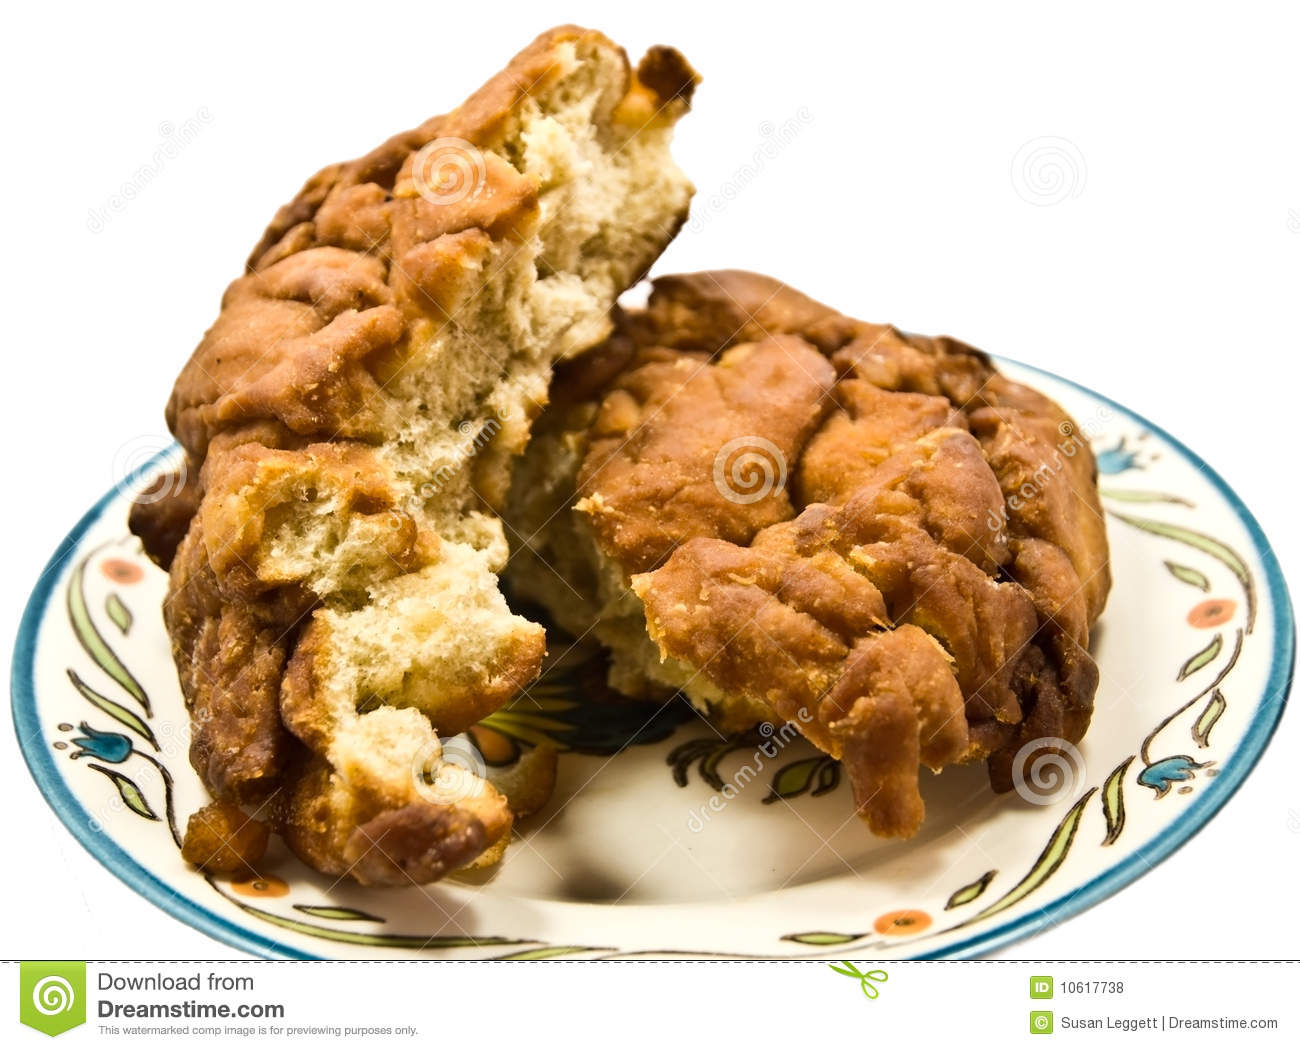 Fried Apple Fritter Royalty Free Stock Photos - Image: 10617738